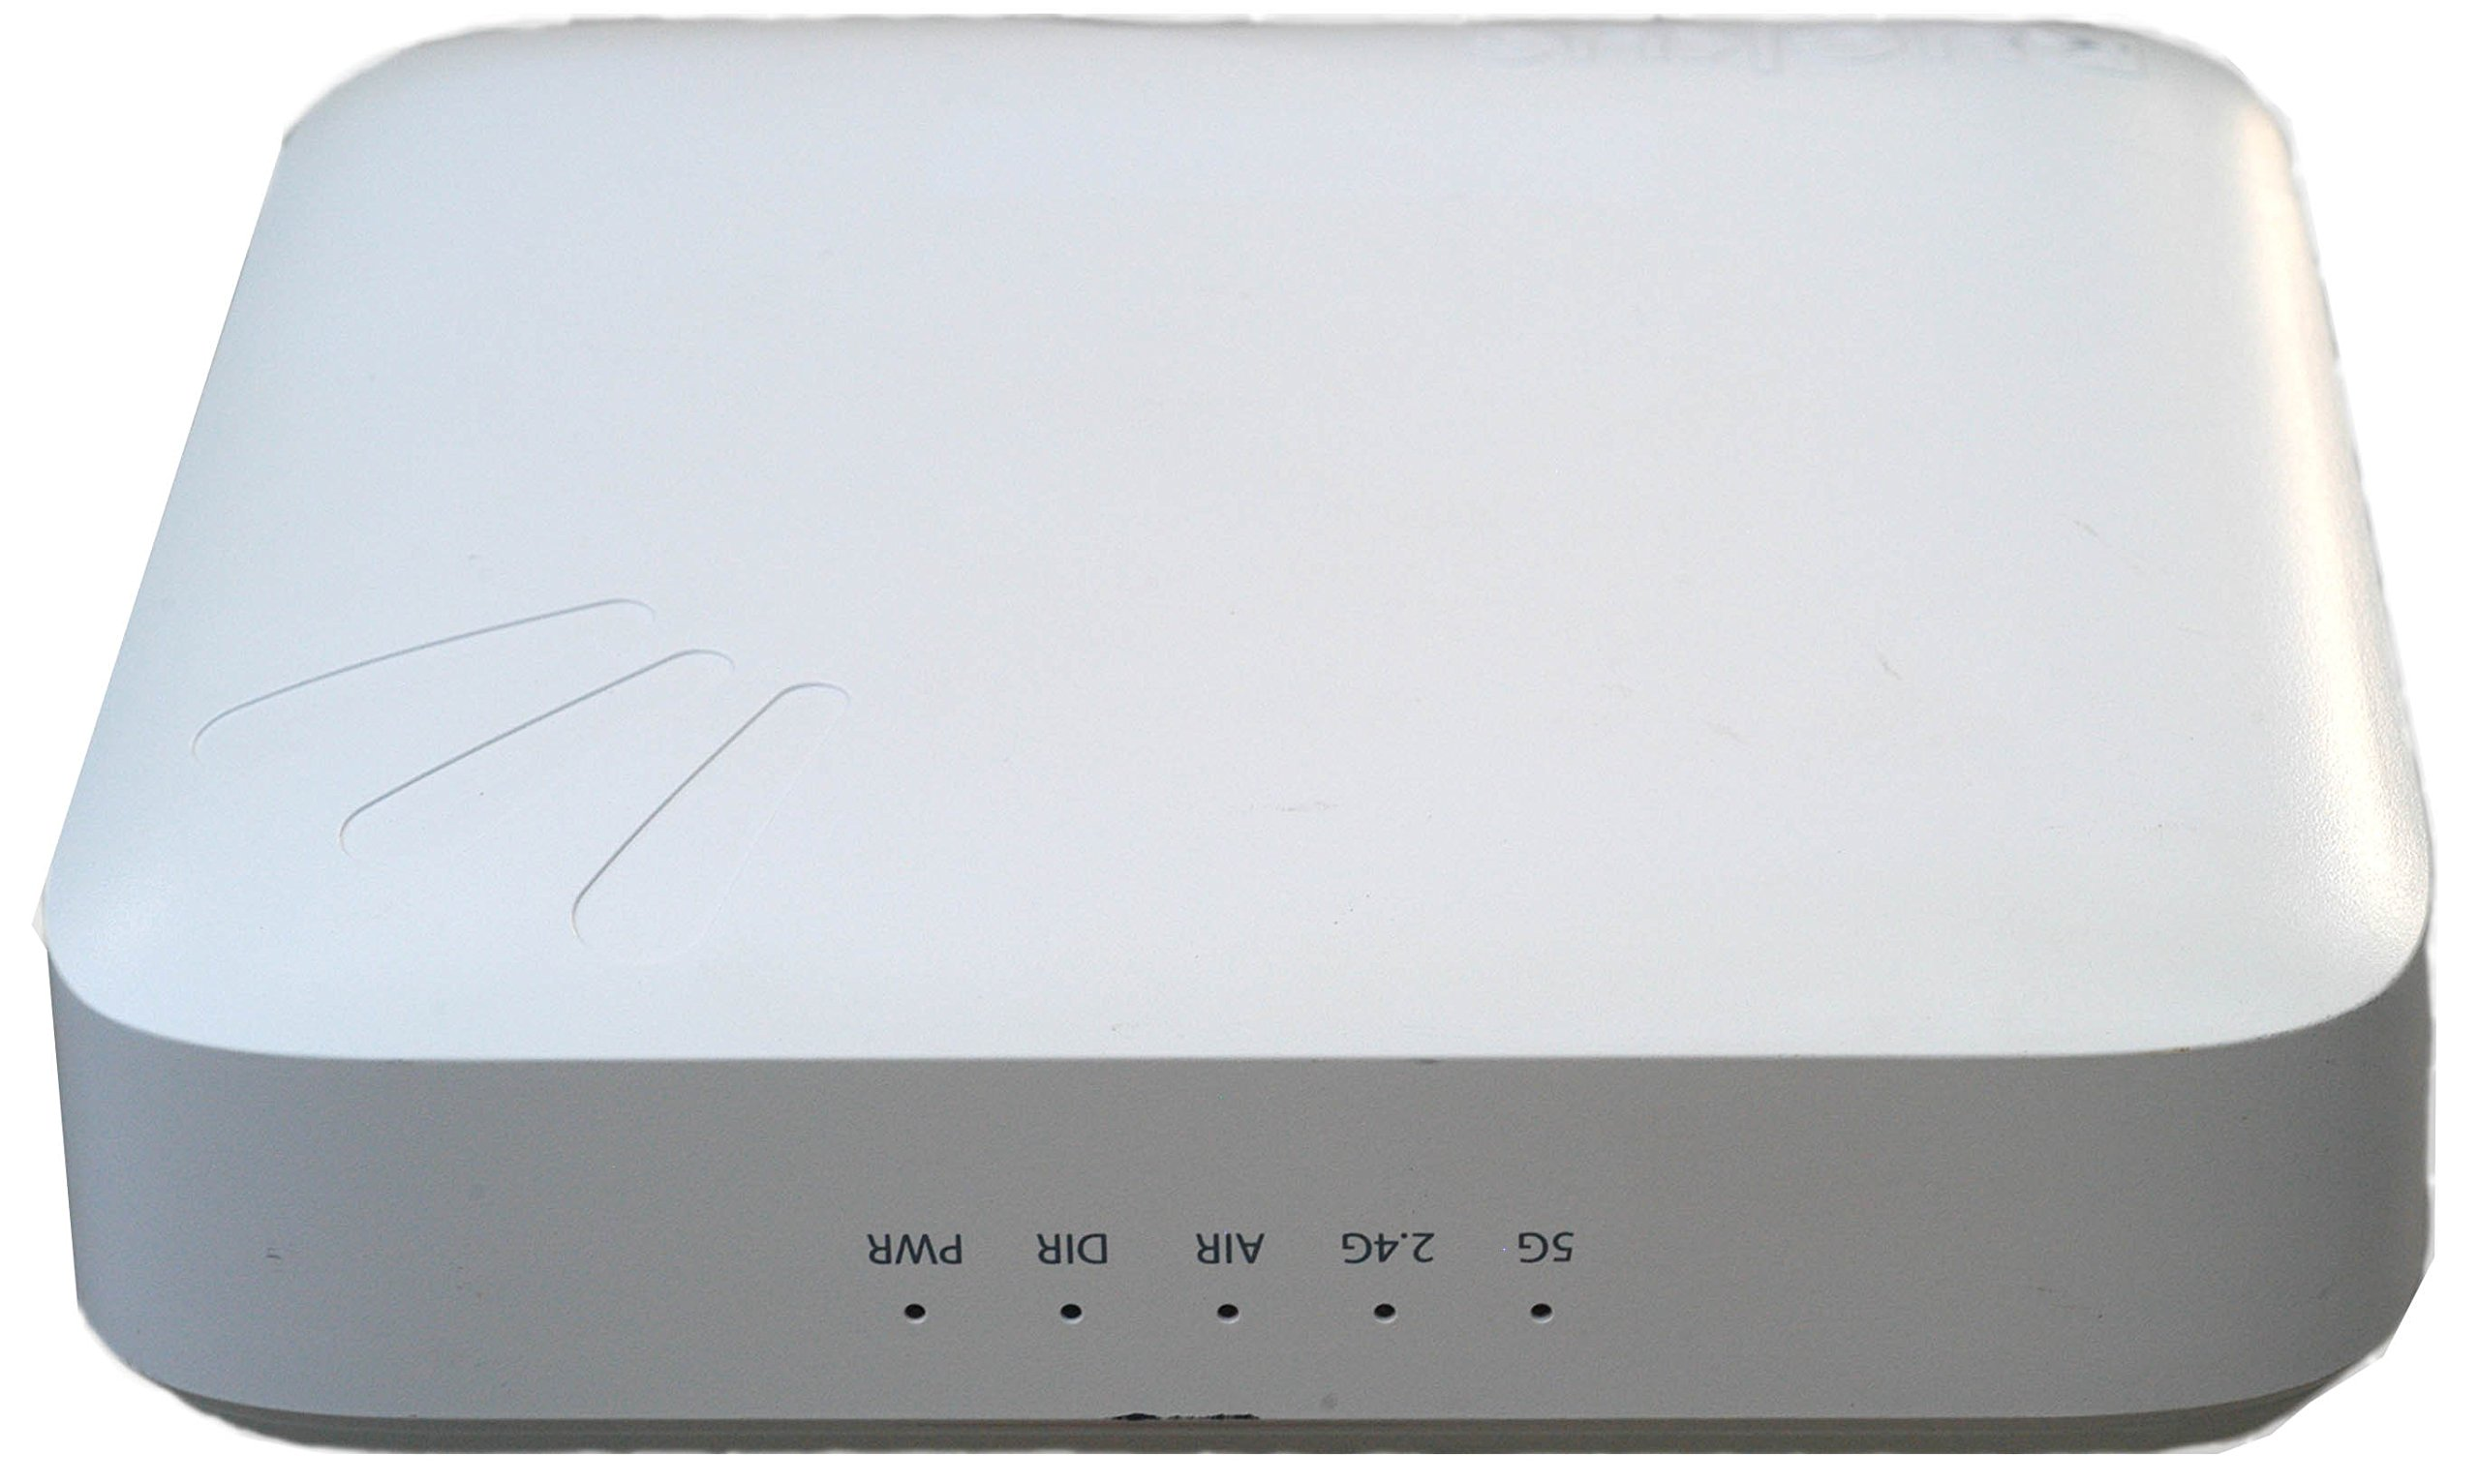 Ruckus Wireless Zoneflex 7982 Indoor Wireless Access Point (Dual-Band 802.11n AP, 900 Mbps, 3x3:3 MIMO, PoE, Smart Wi-Fi, 901-7982-US00)